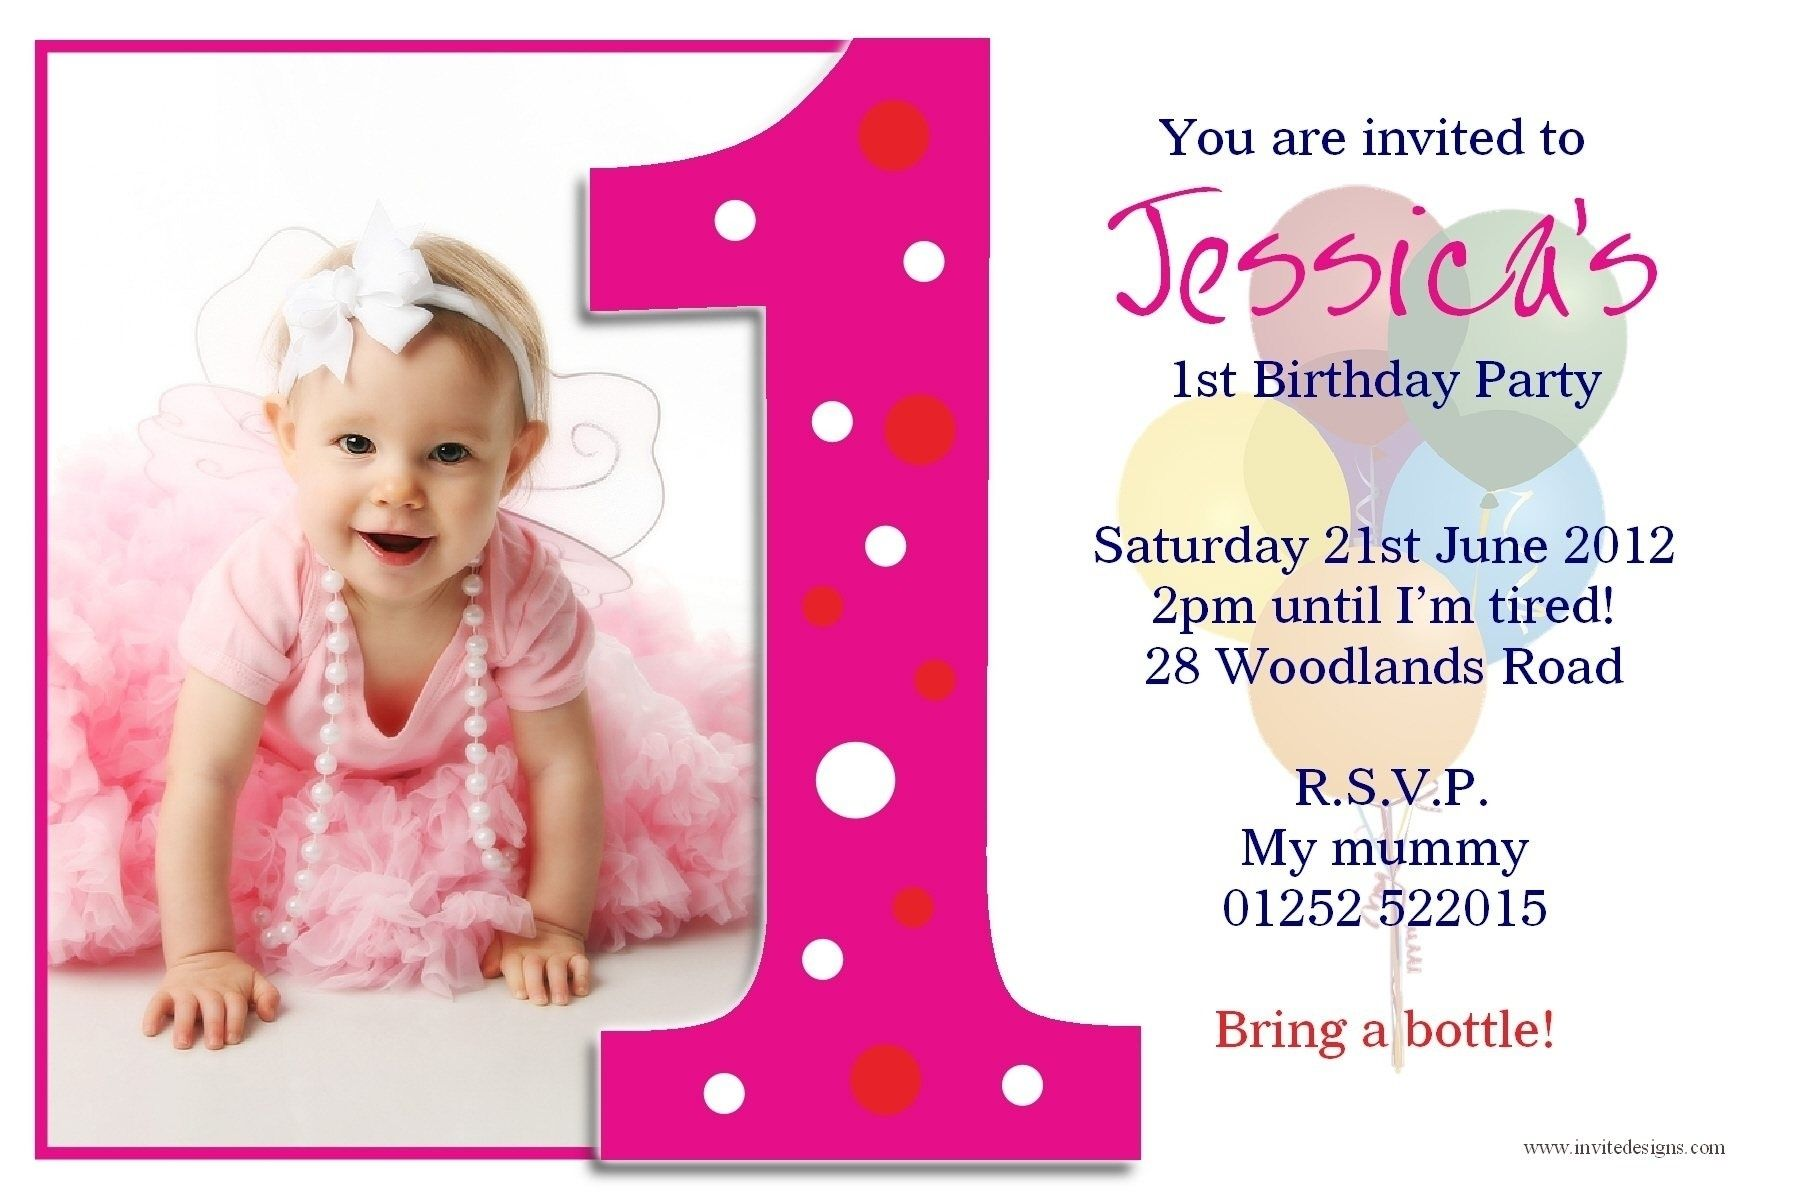 1st Birthday Invitation Card Template Free Download Templates Corner Photo Birthday Invitations 1st Birthday Invitations Girl First Birthday Invitation Cards